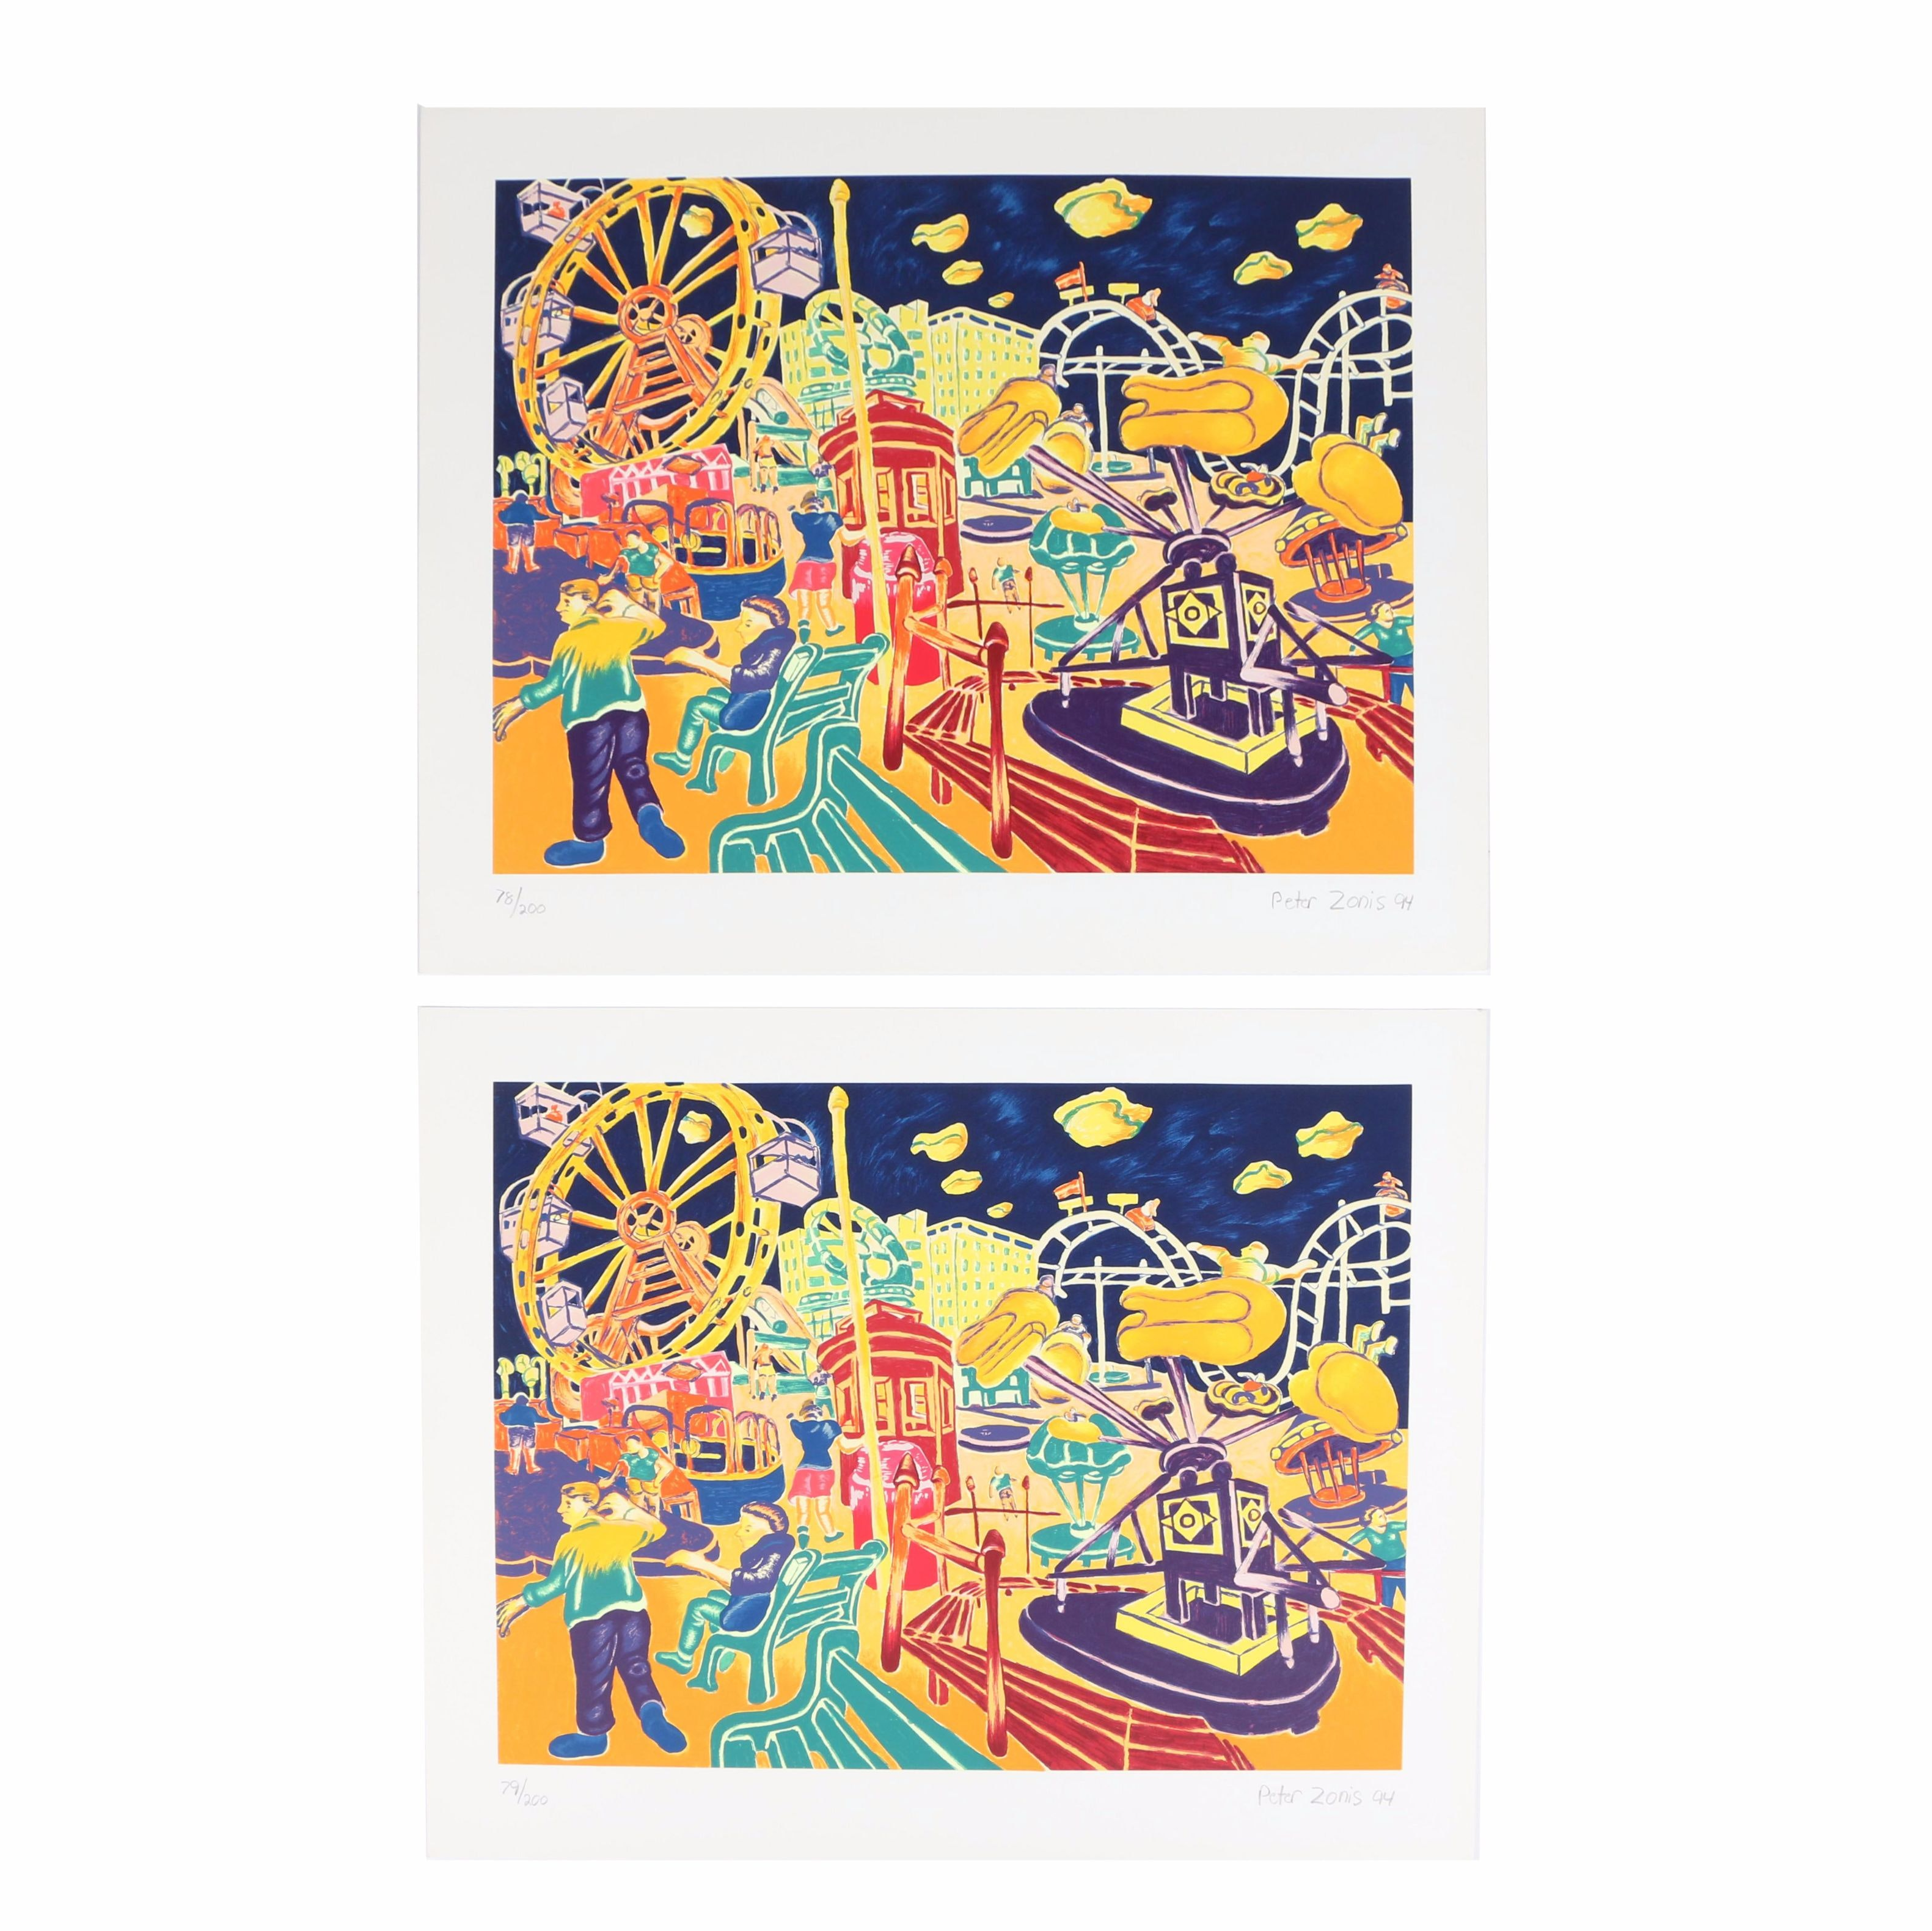 Peter Zonis Limited Edition Serigraphs of a Carnival